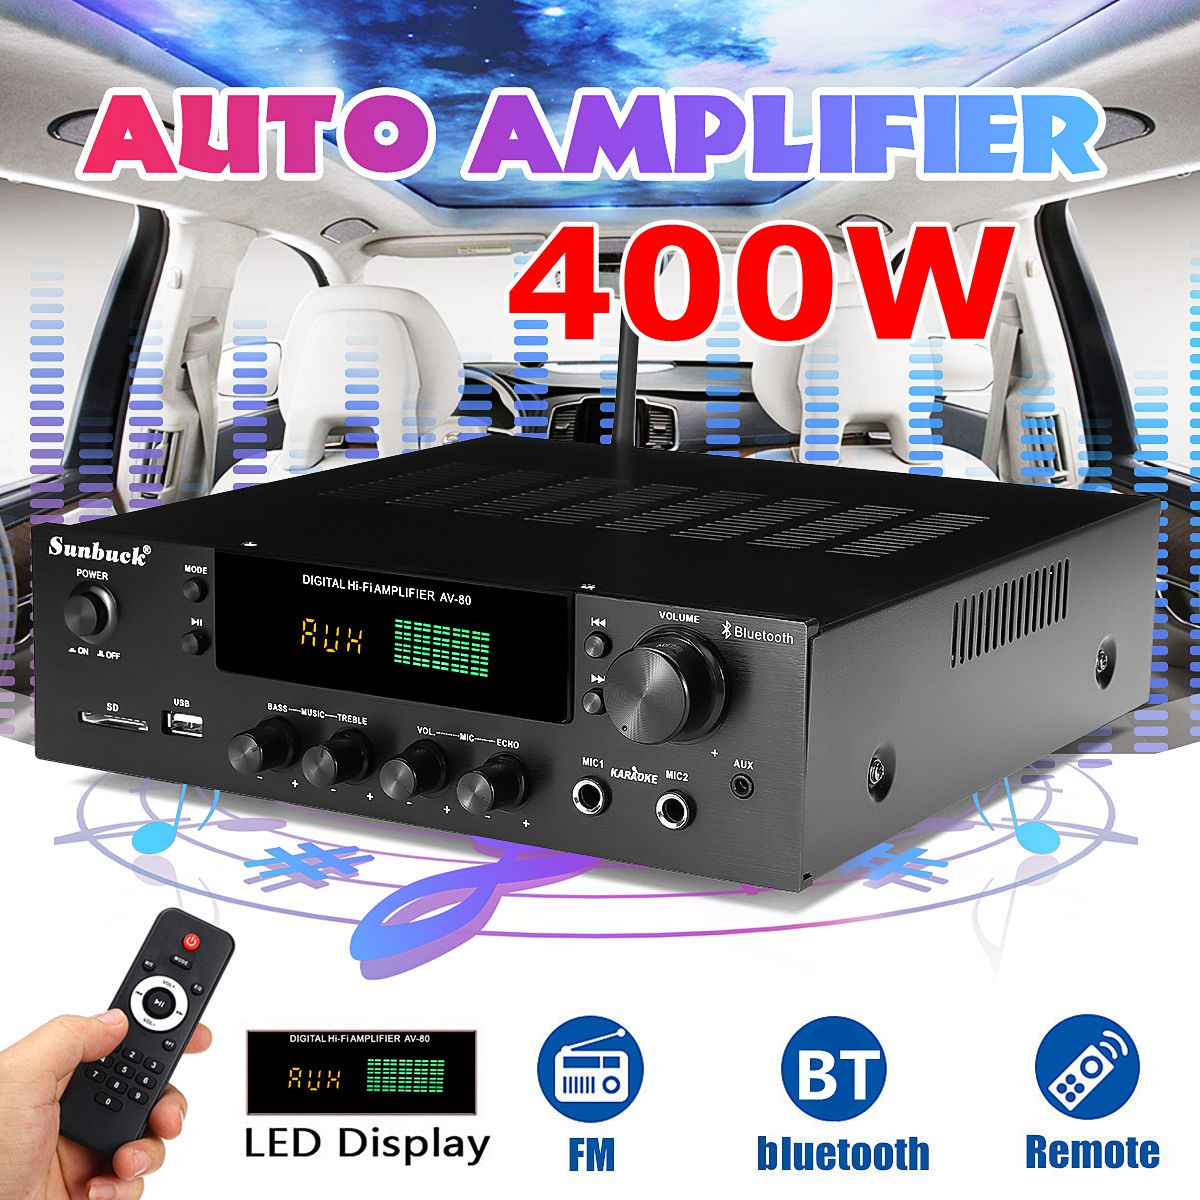 Sunbuck 220V 400W Bluetooth Stereo Amplifier HiFi 2.0 Audio Power Remote Control Headphone Jack USB SD AV-80